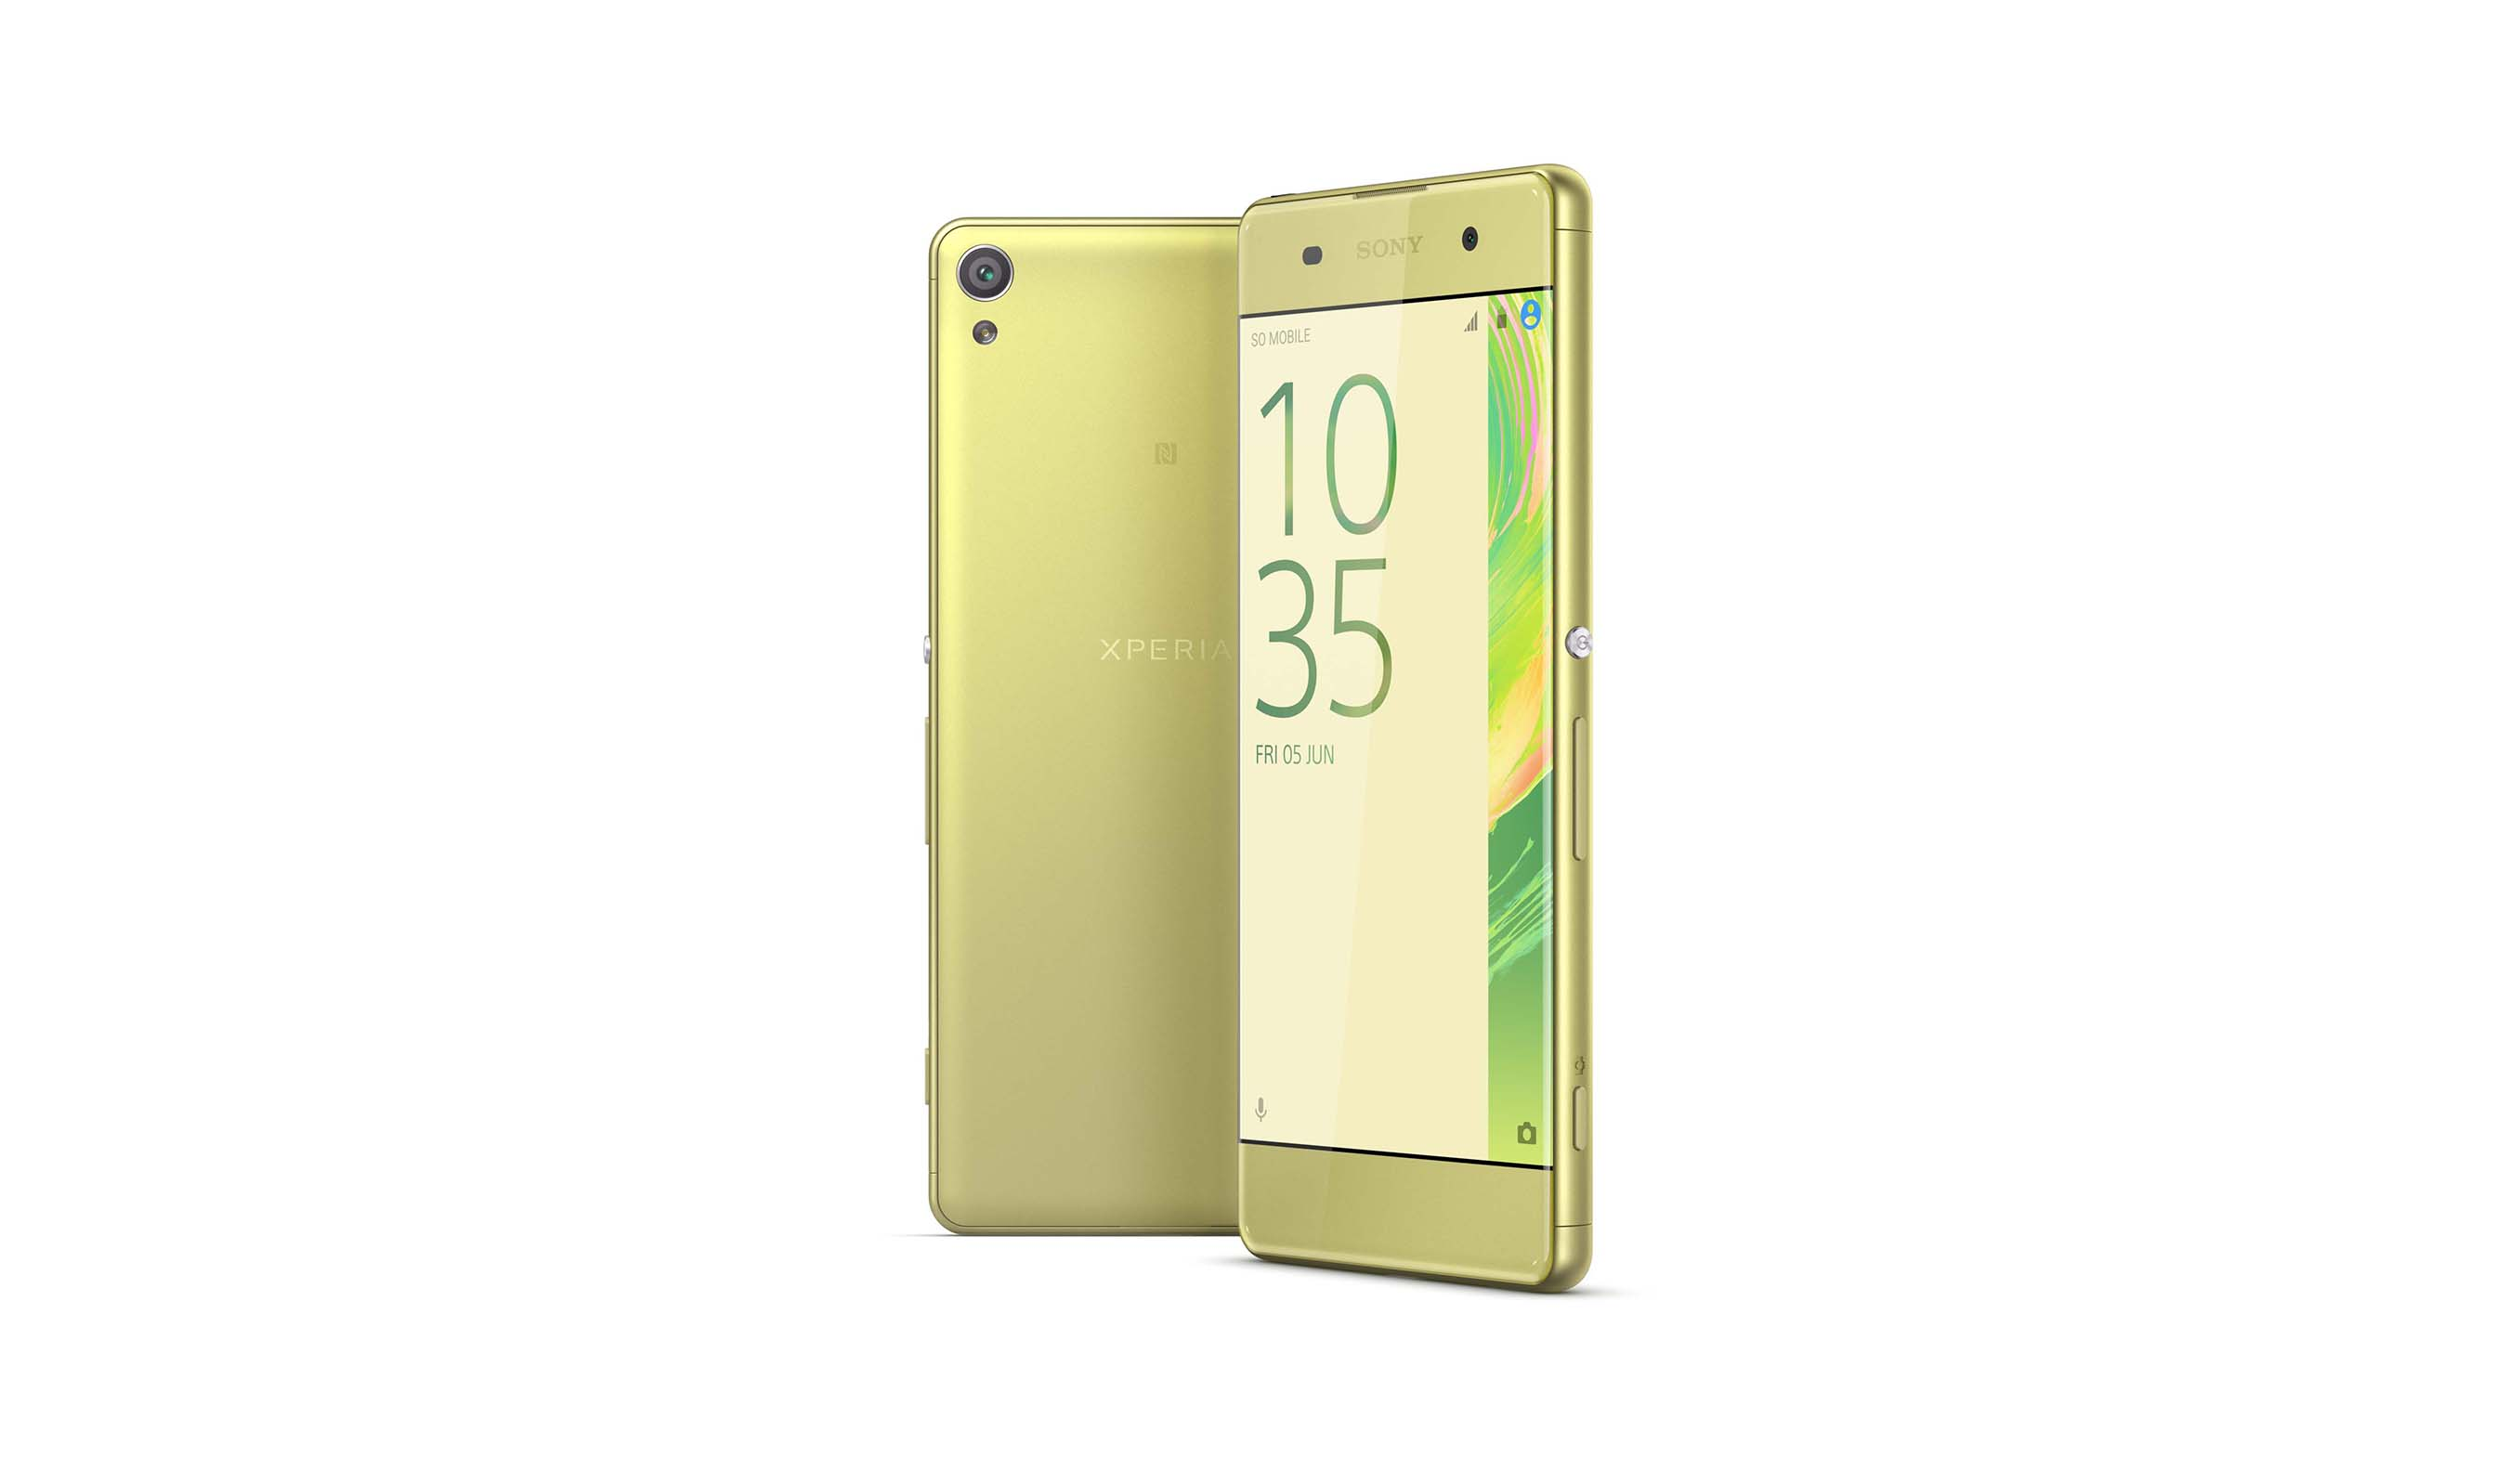 Xperia XA is the perfect fit for those looking for a smartphone with an attractive design that is comfortable to hold and fun to operate.